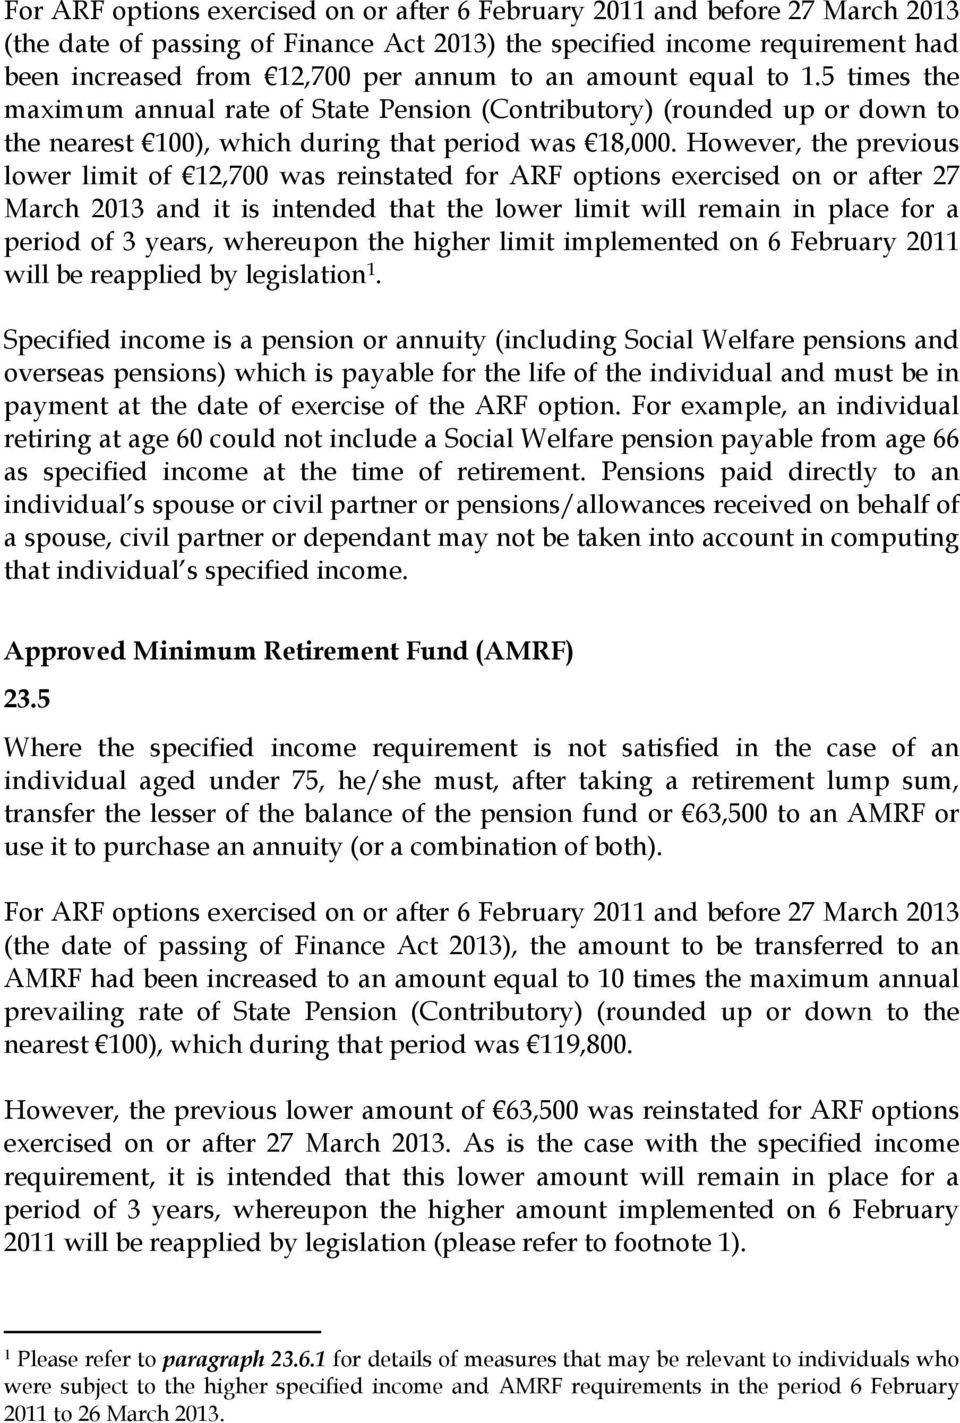 However, the previous lower limit of 12,700 was reinstated for ARF options exercised on or after 27 March 2013 and it is intended that the lower limit will remain in place for a period of 3 years,